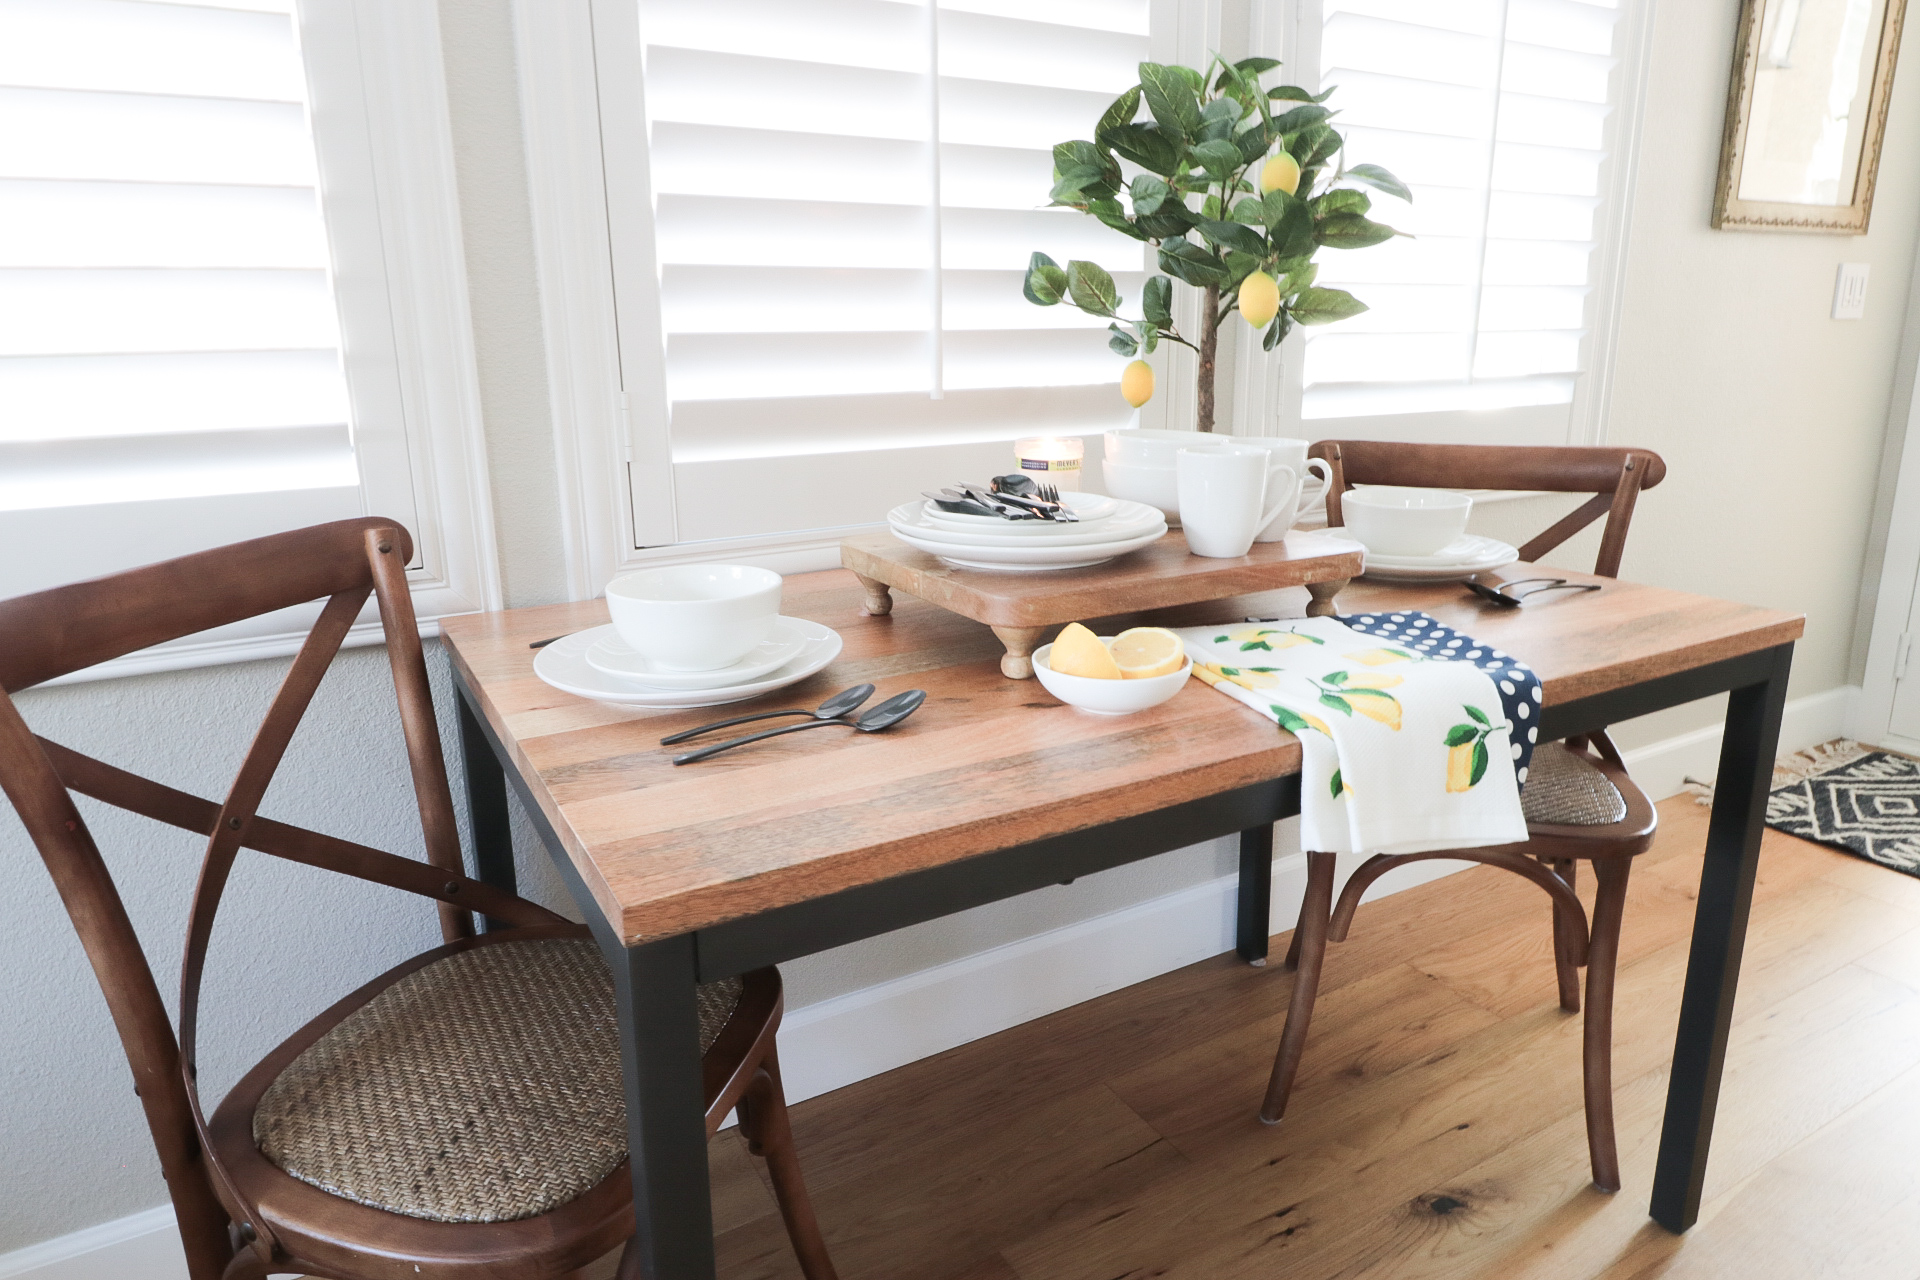 Simple Ways To Give Your Kitchen A Spring Refresh With Bed Bath Beyond House Becomes Home Interiors